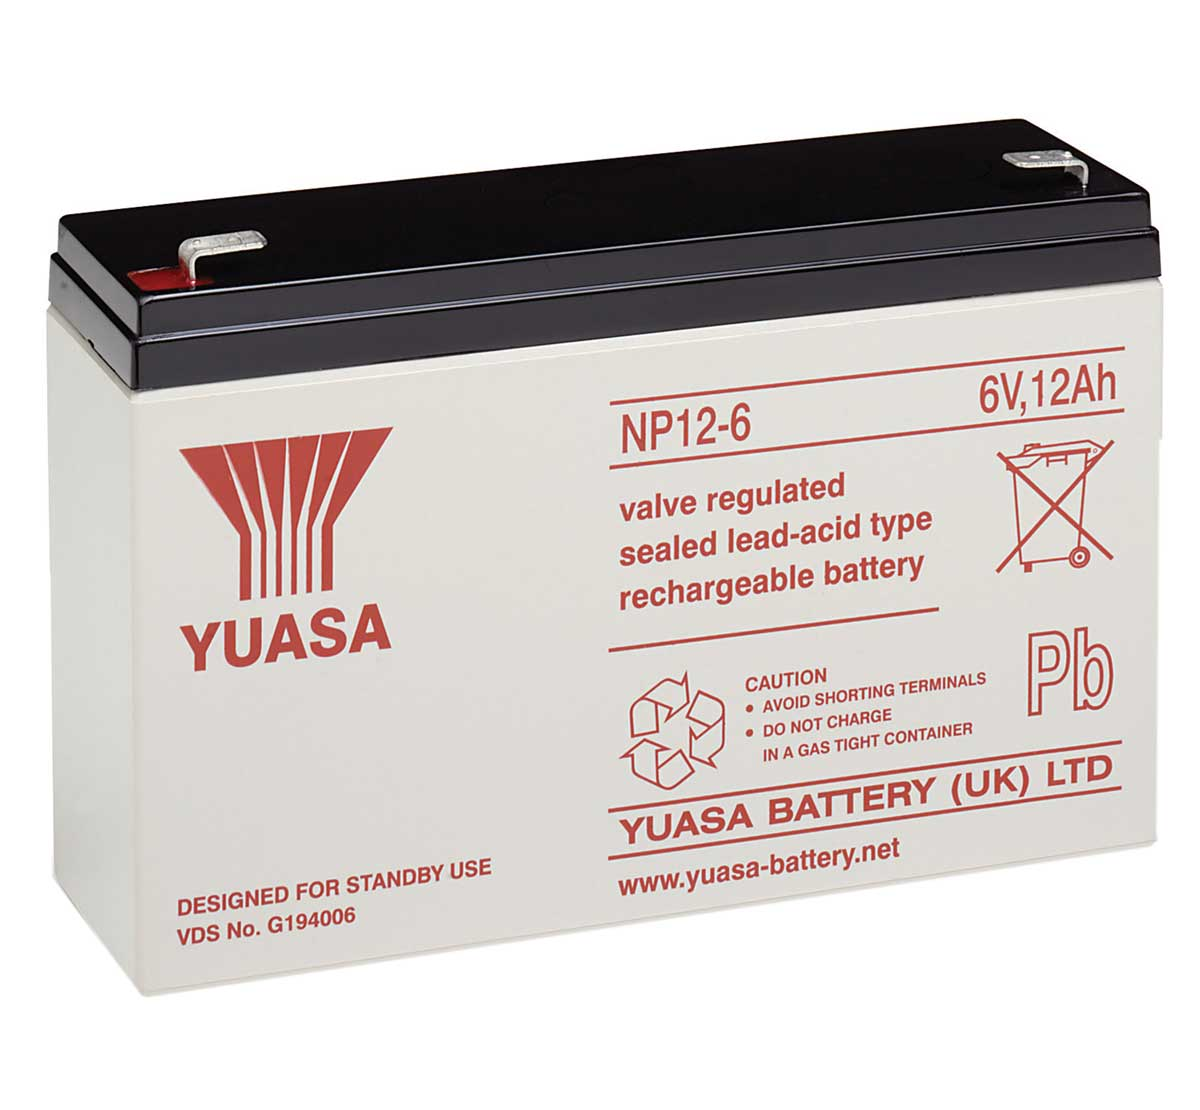 Yuasa NP12-6 6V 12Ah Sealed Lead Acid Battery